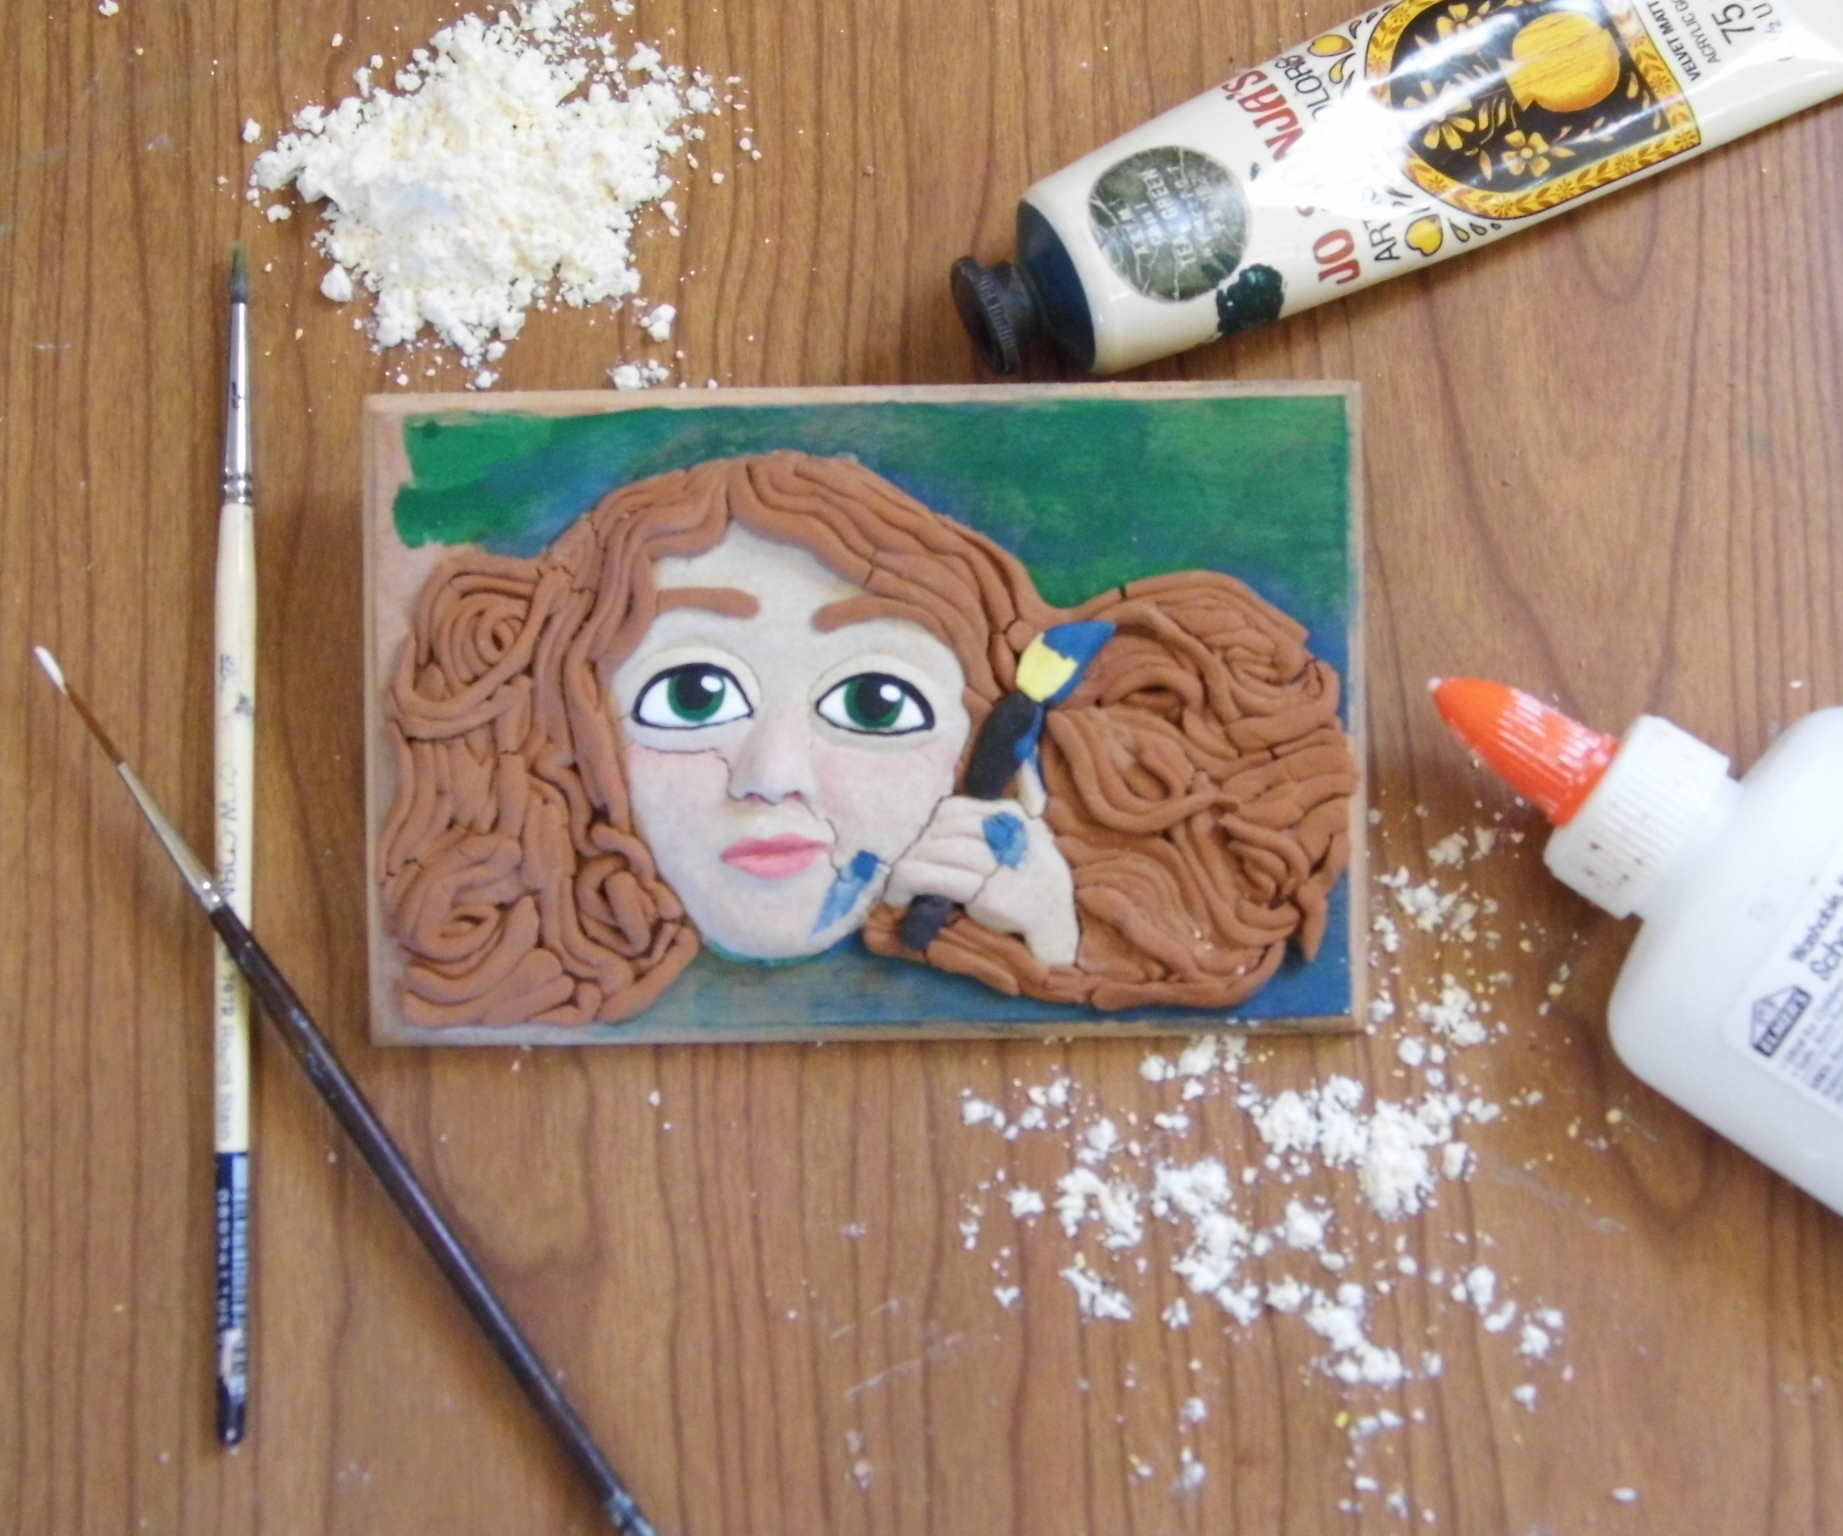 Homemade Clay with Paint